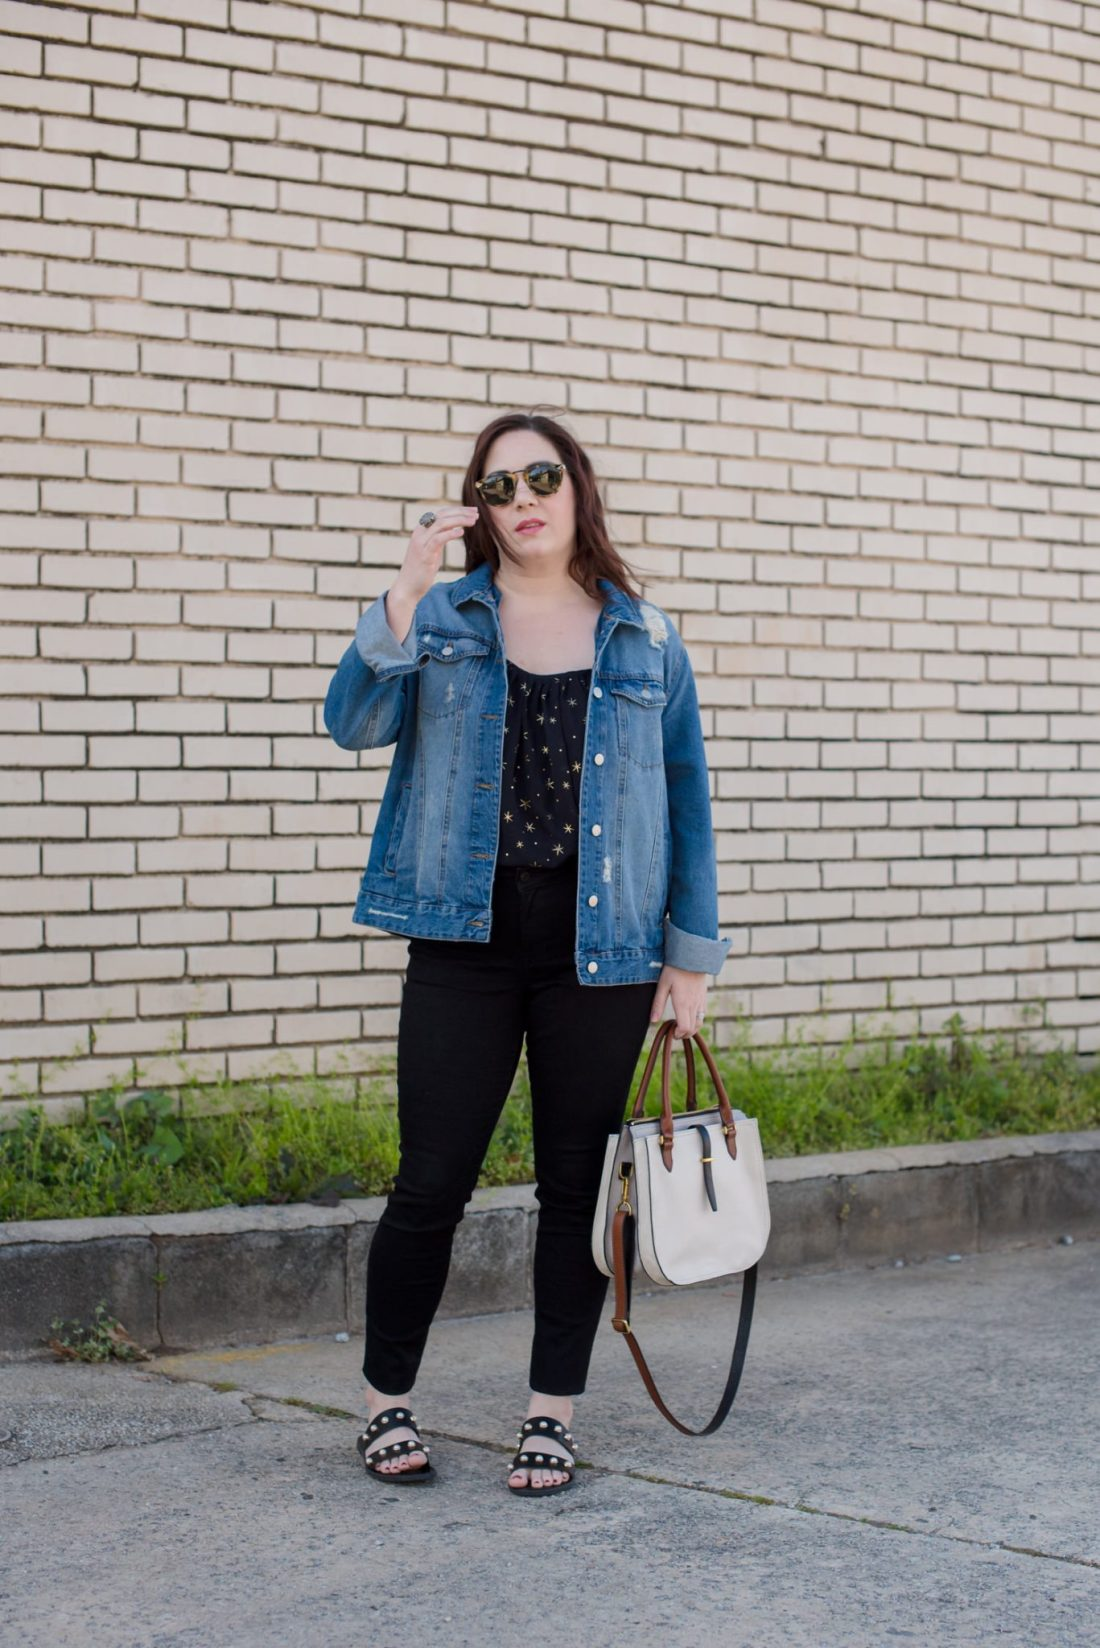 Destructed Denim and Stars // Miss Molly Moon